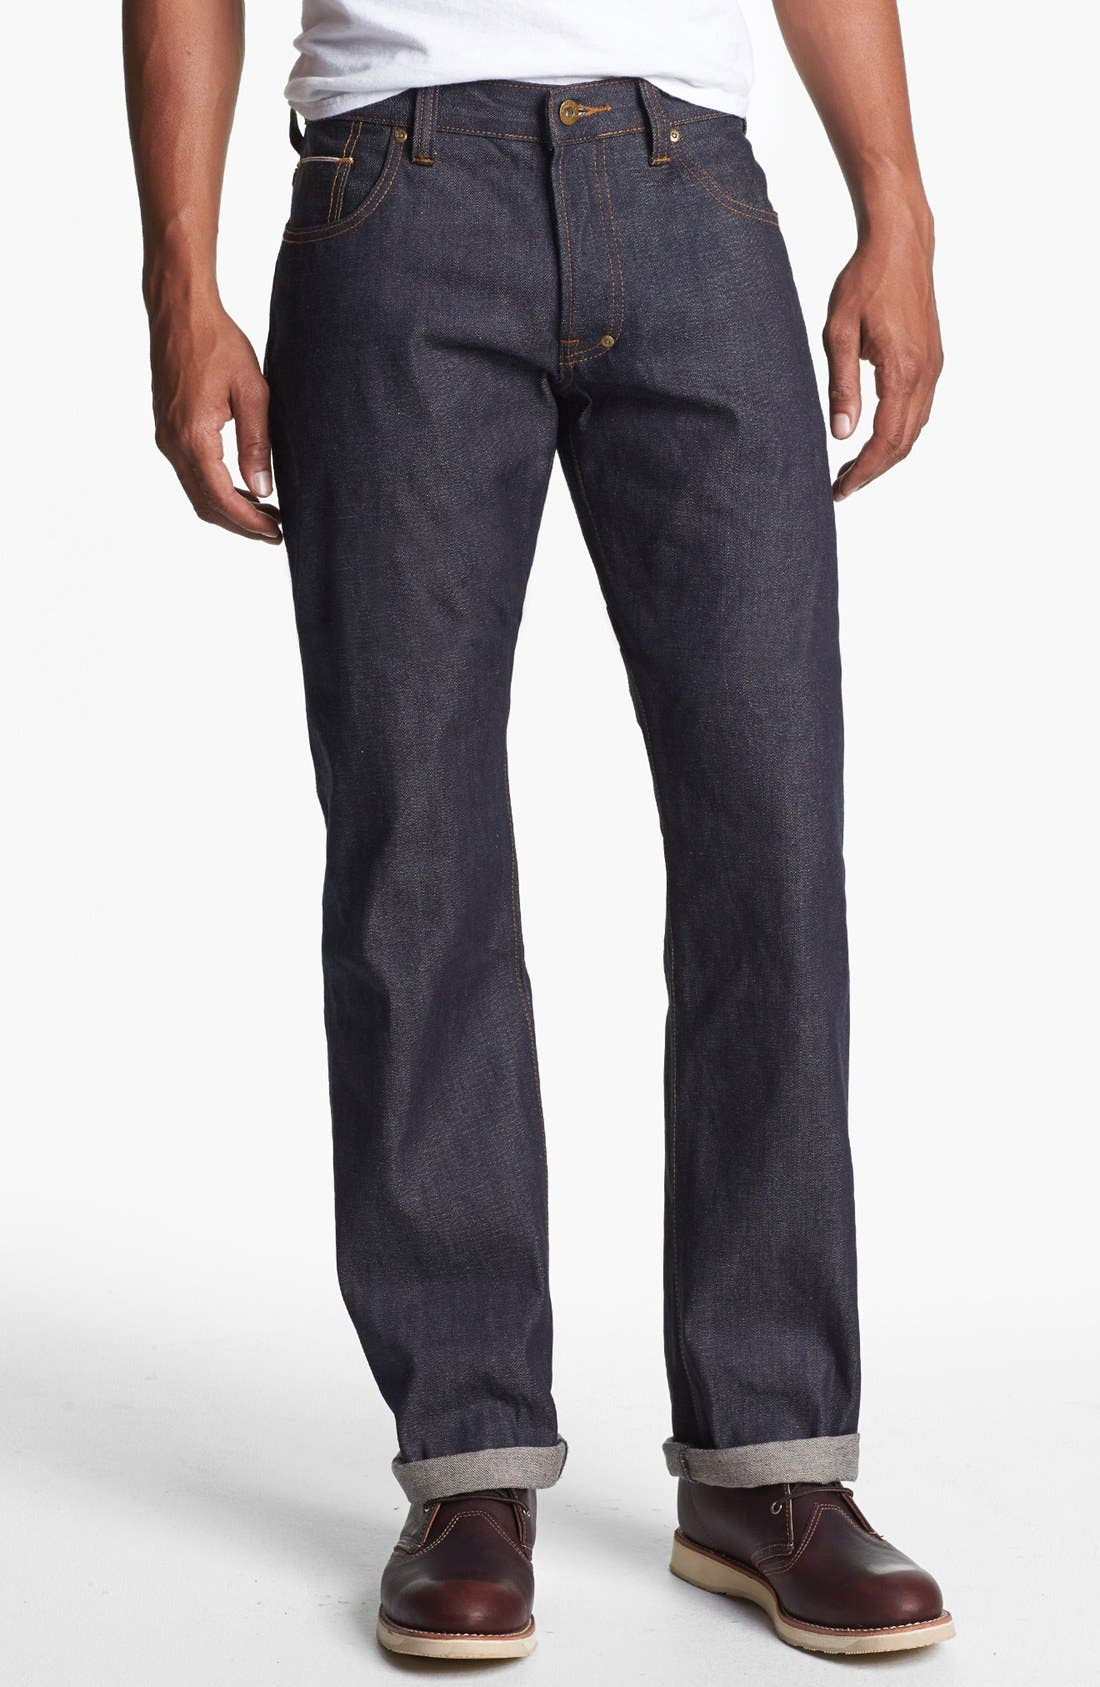 Alternate Image 1 Selected - PRPS 'Barracuda' Straight Leg Selvedge Jeans (Raw)